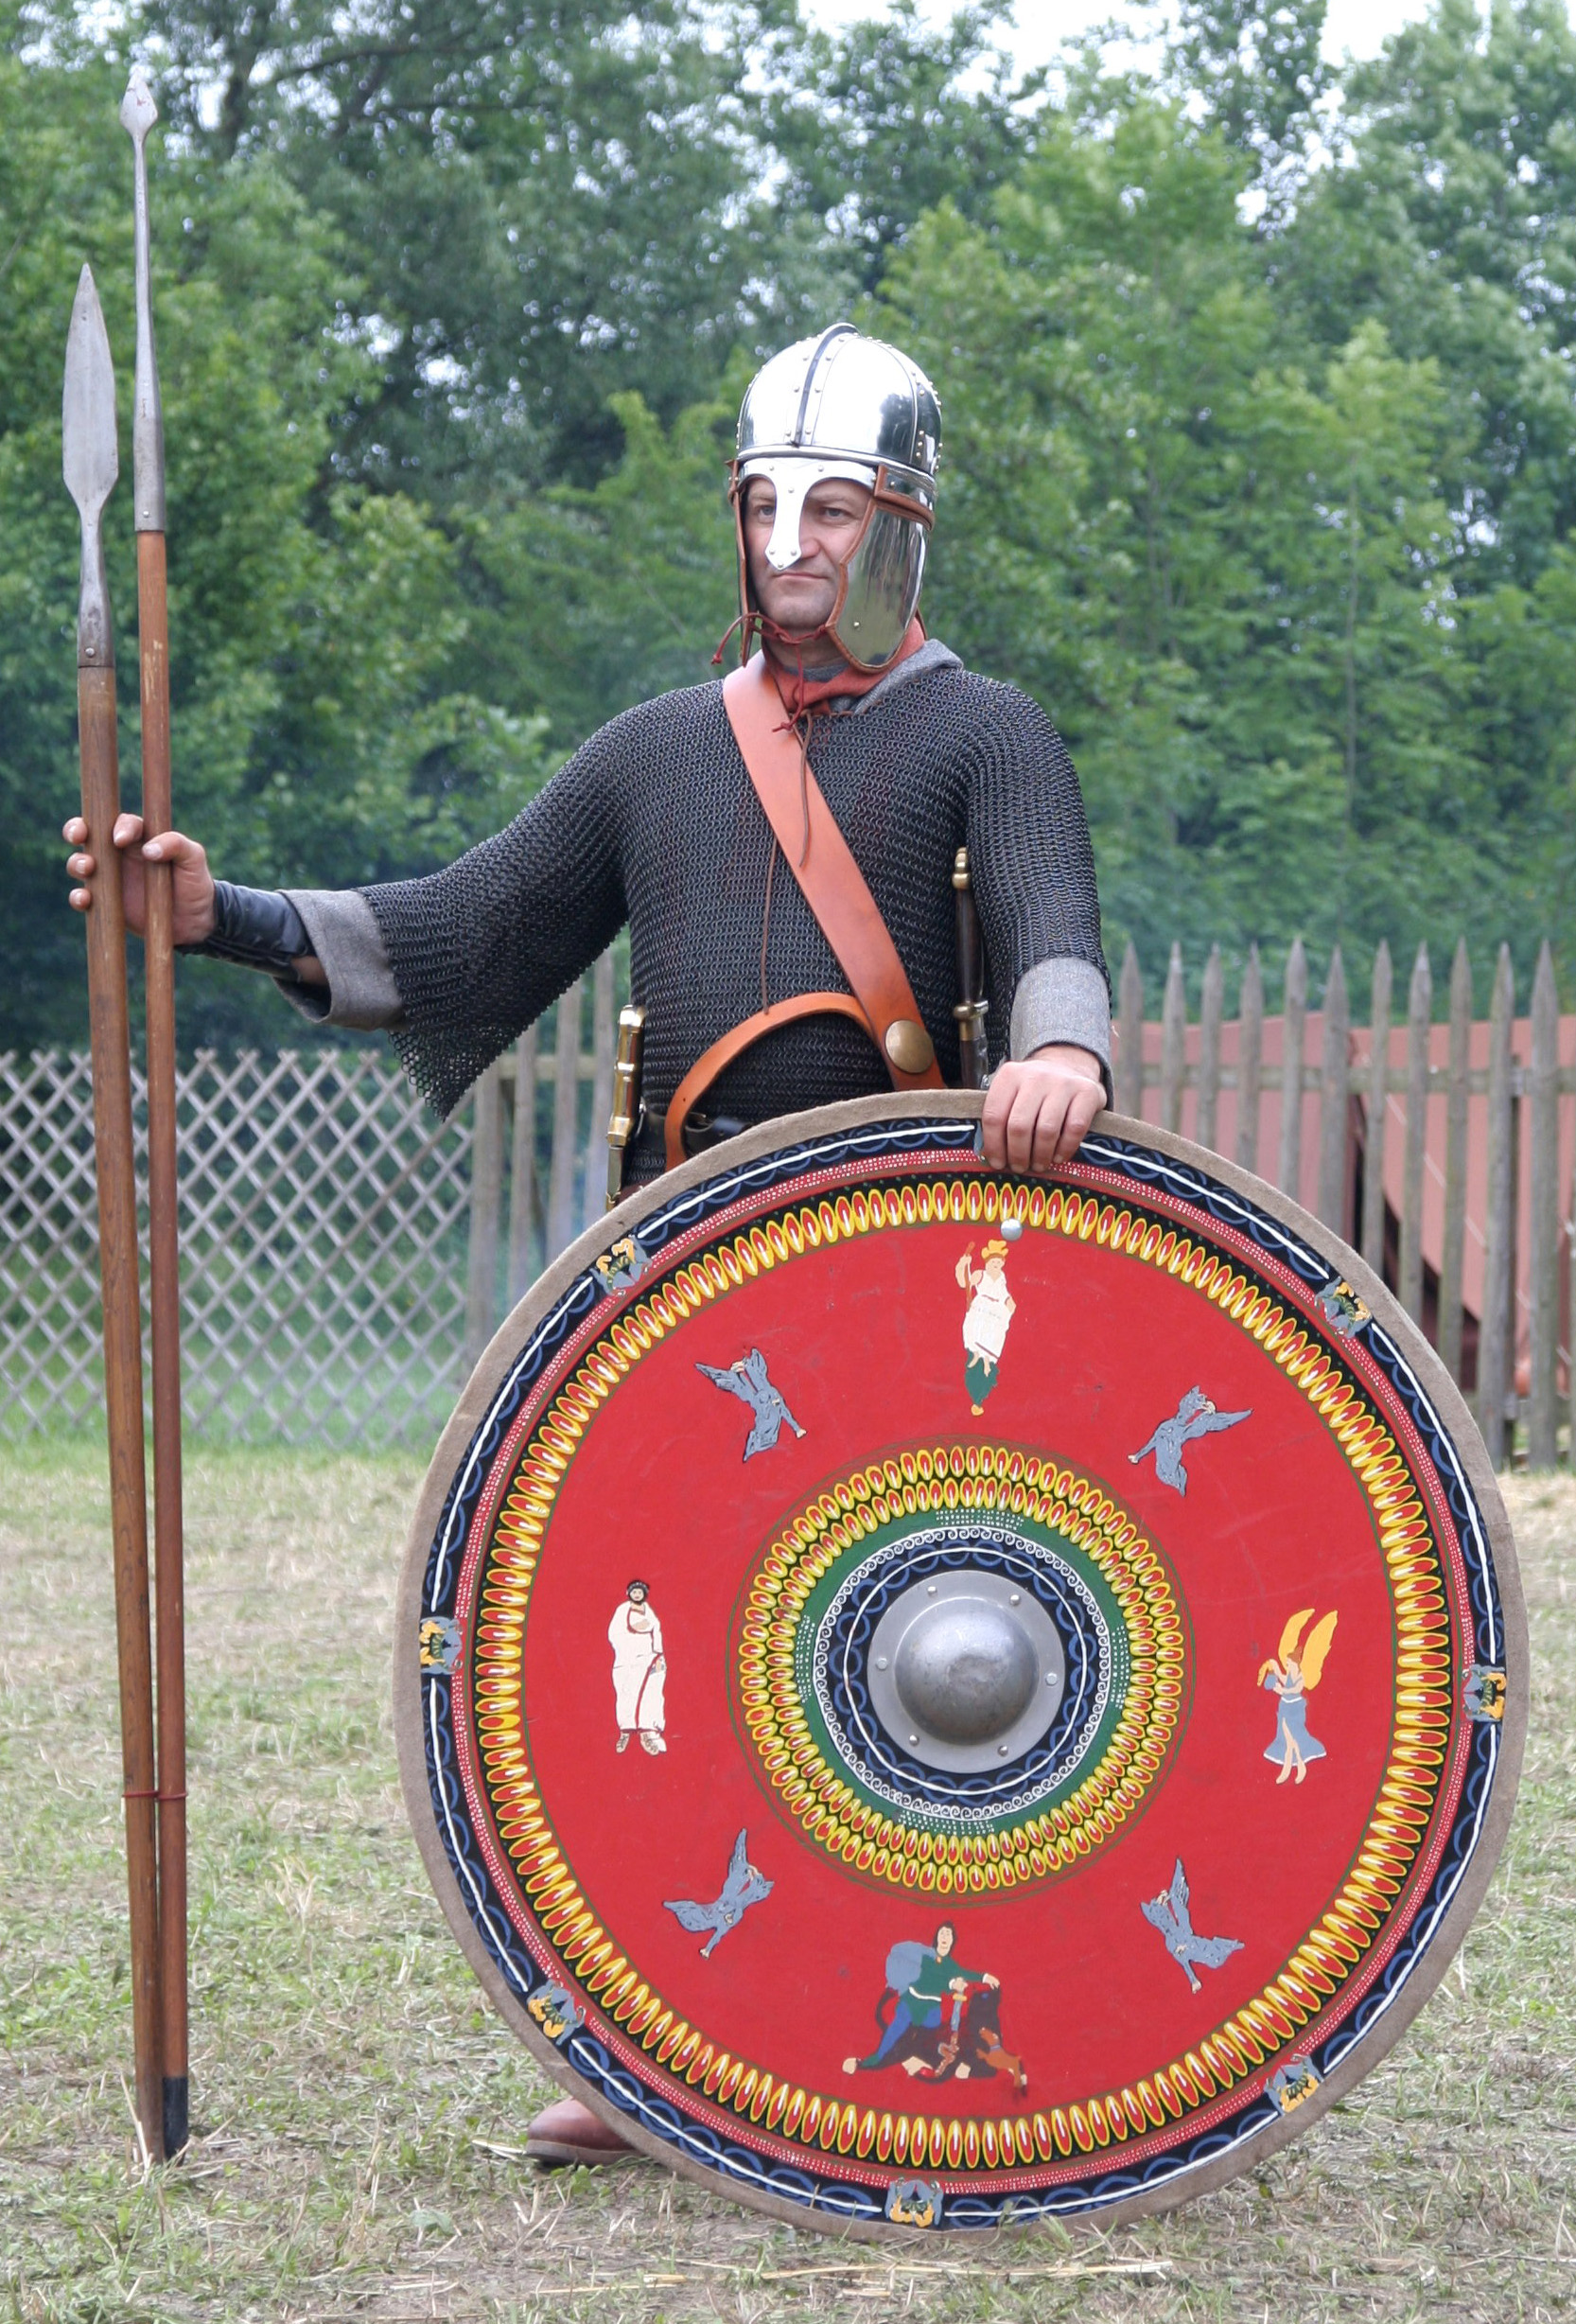 https://upload.wikimedia.org/wikipedia/commons/thumb/1/1c/Roman_soldier_end_of_third_century_northern_province_-_cropped.jpg/200px-Roman_soldier_end_of_third_century_northern_province_-_cropped.jpg